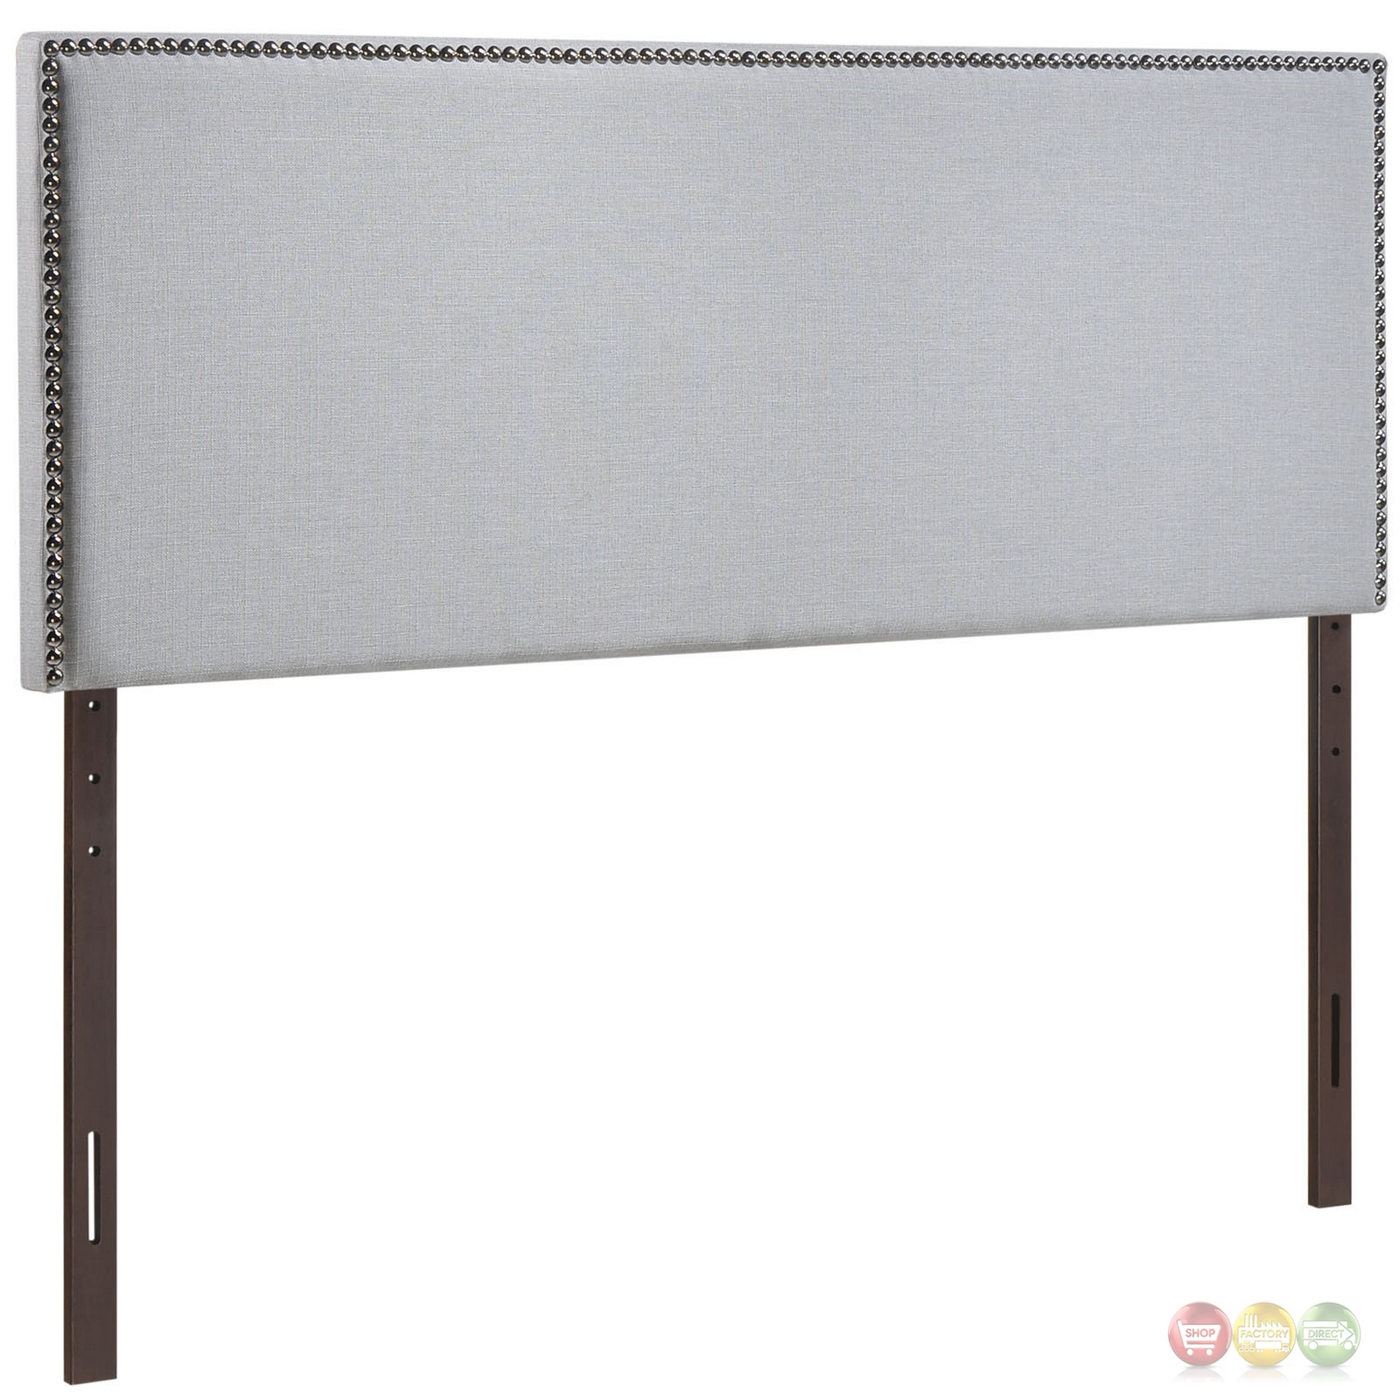 Region Full Nail Head Trimmed Upholstered Headboard Sky Gray